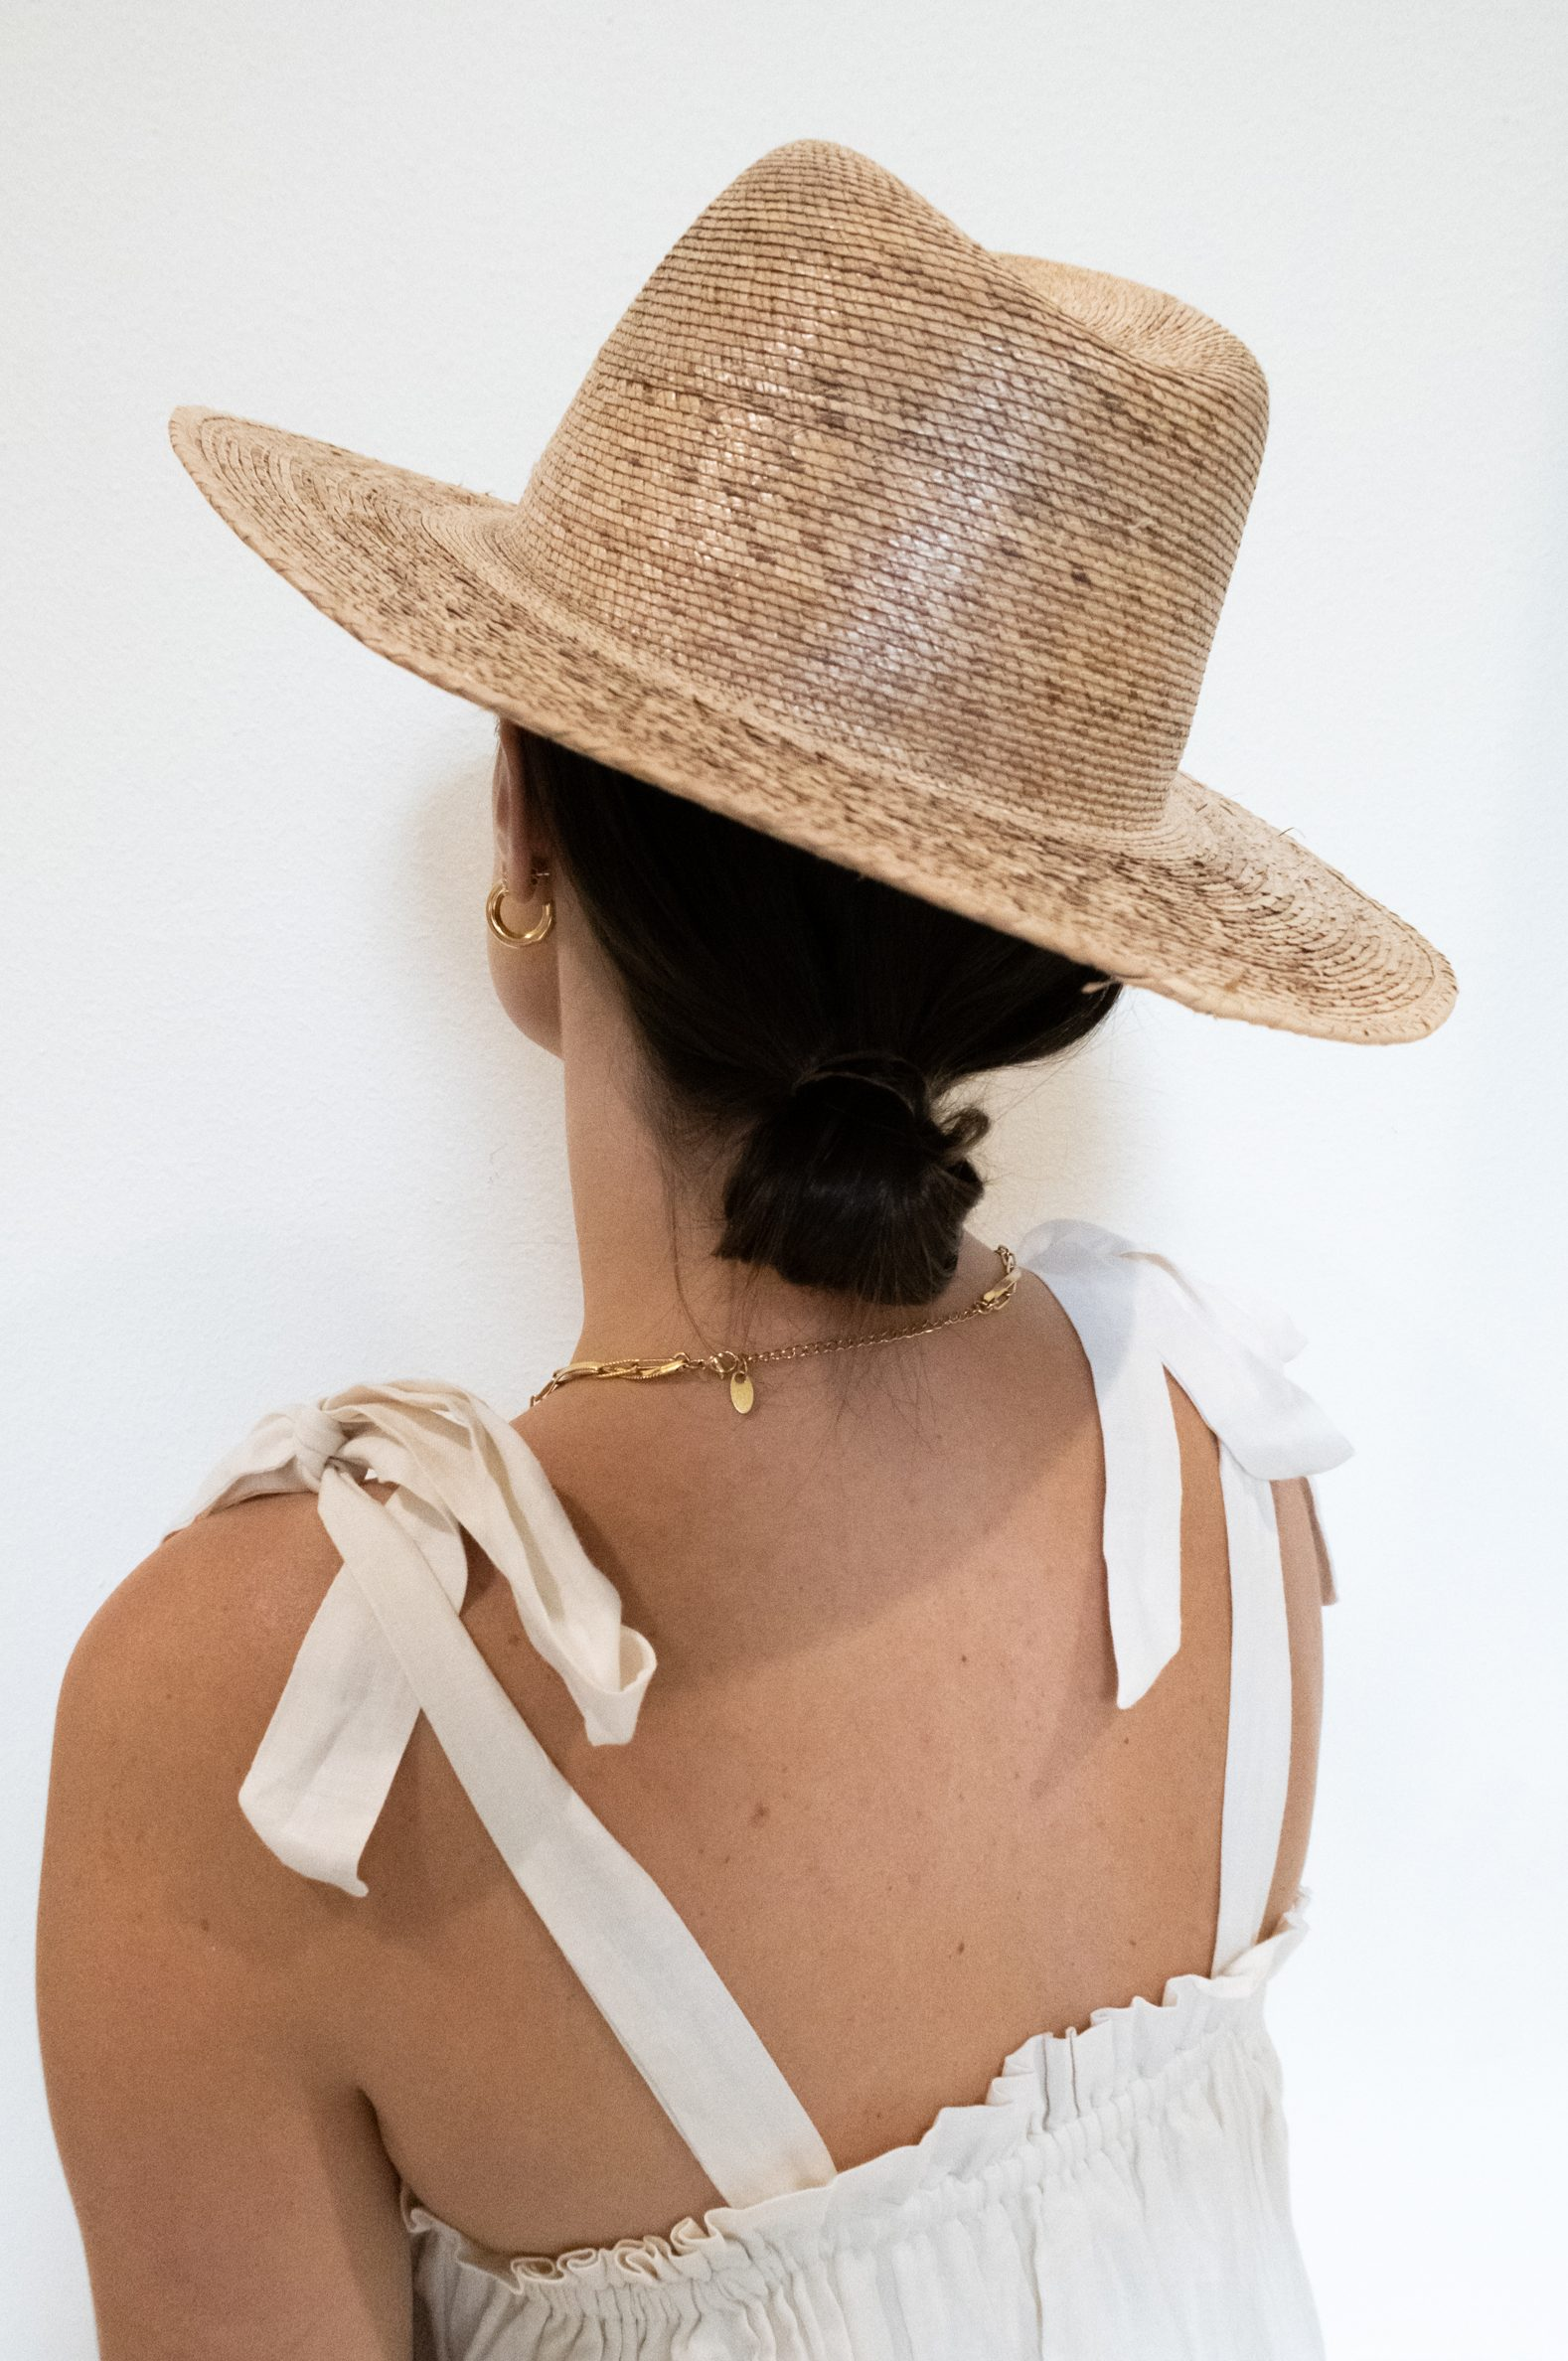 Summer Hairstyles for Short Hair: Elly Brown shares the perfect straw hat for summertime